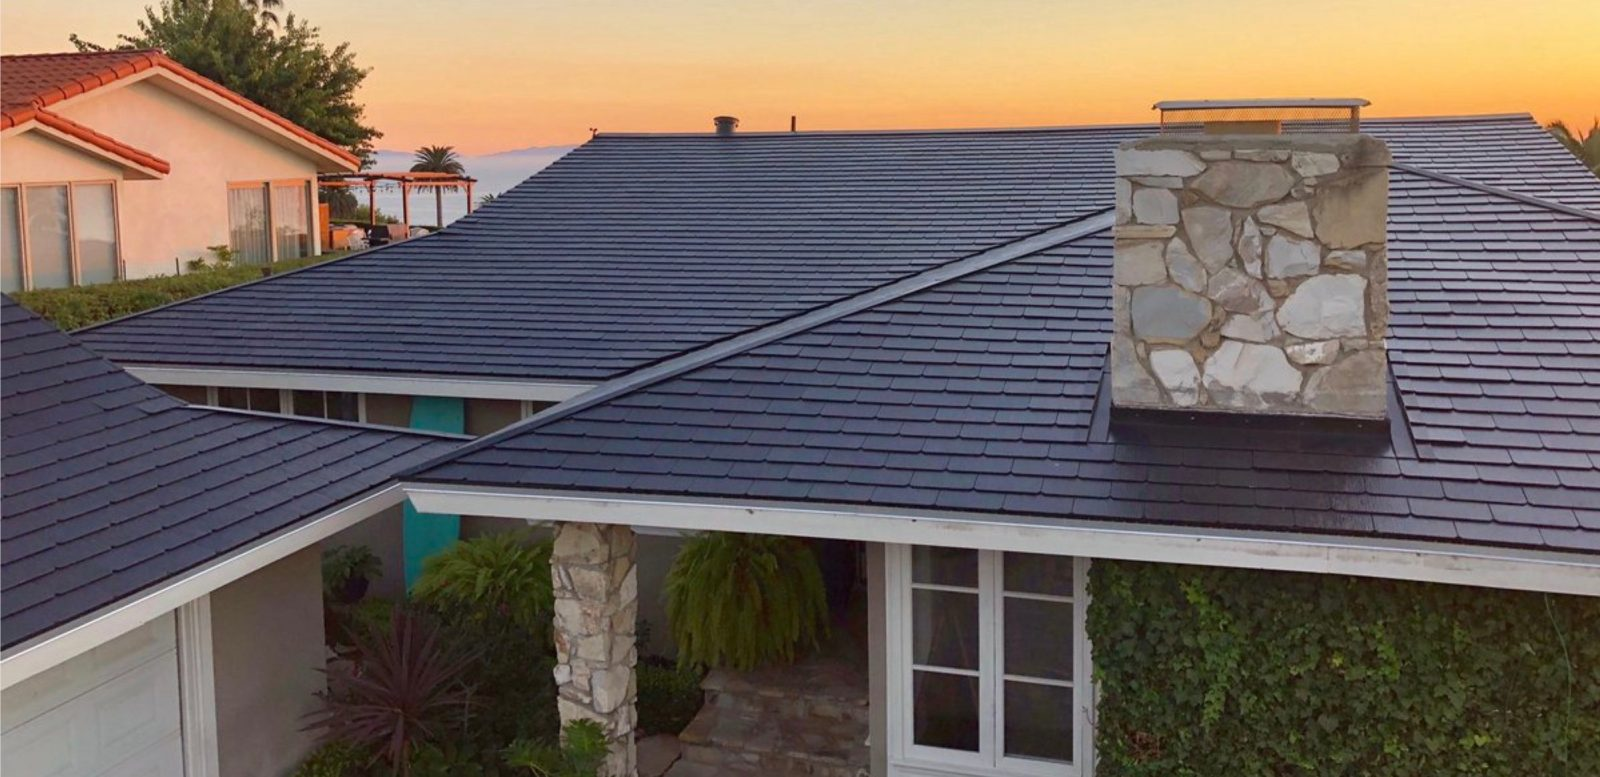 Tesla Solar Roof Shingles >> Tesla Solar Roof Volume Production Is Delayed To Next Year Electrek